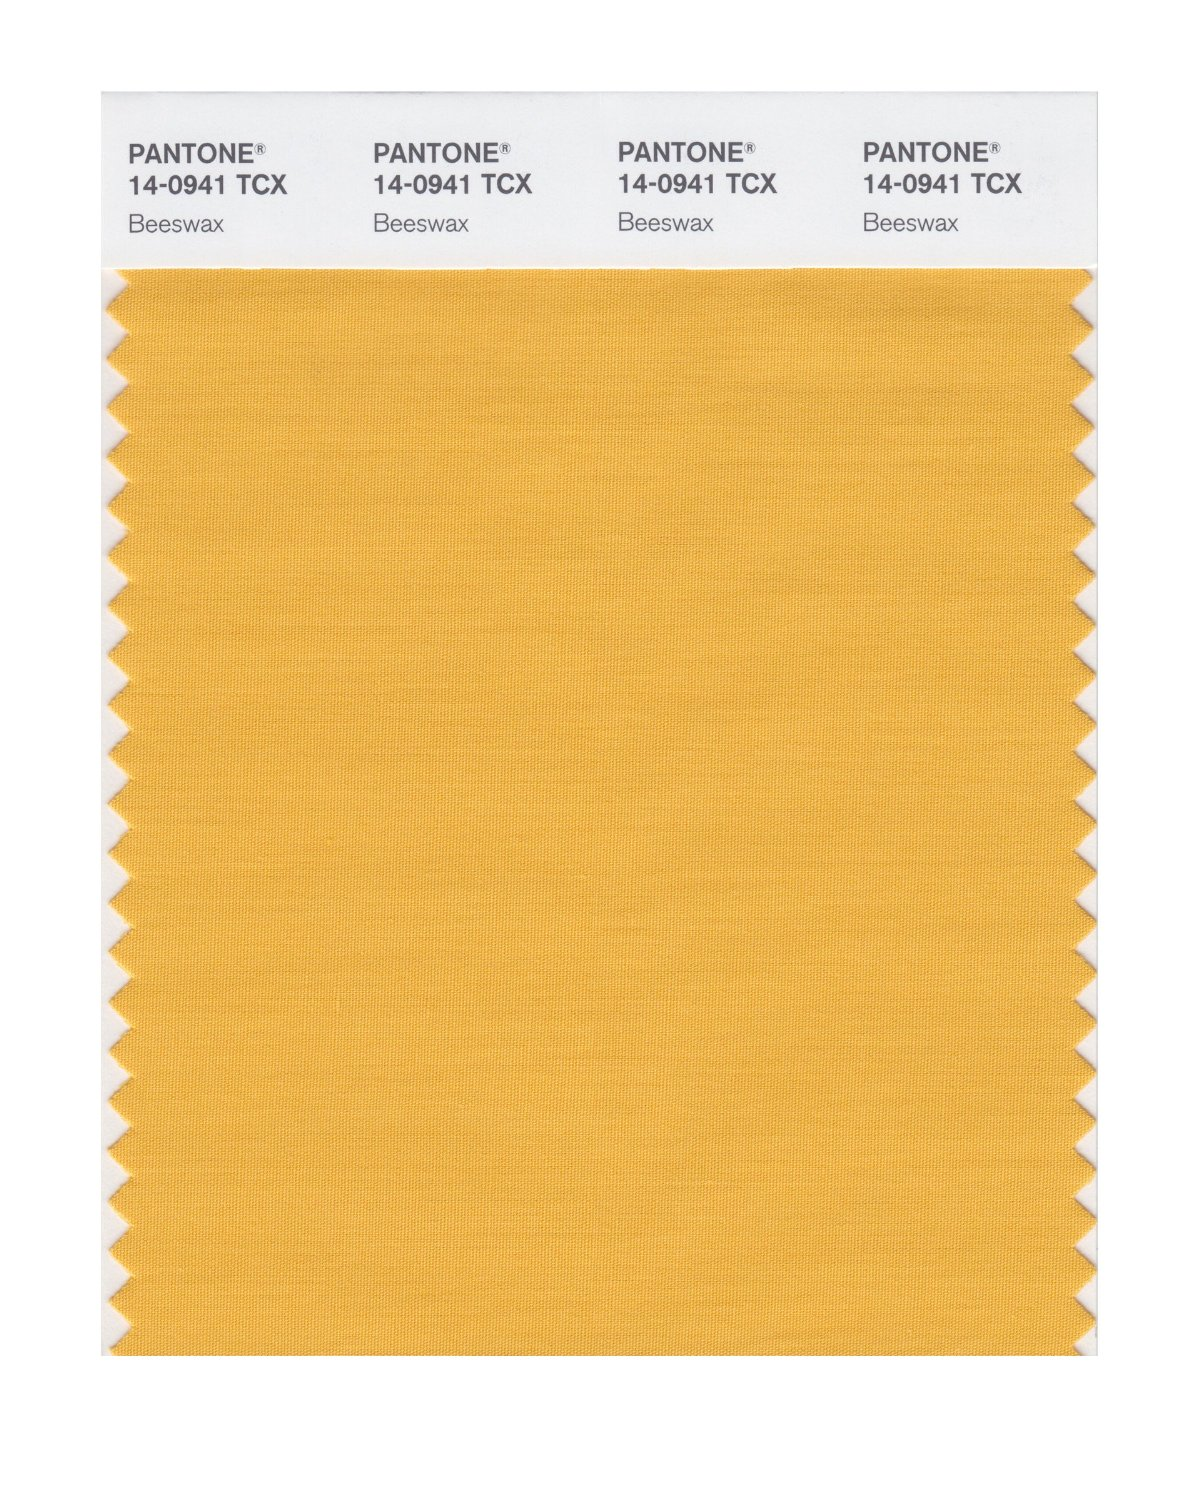 Pantone Smart Swatch 14-0941 Beeswax